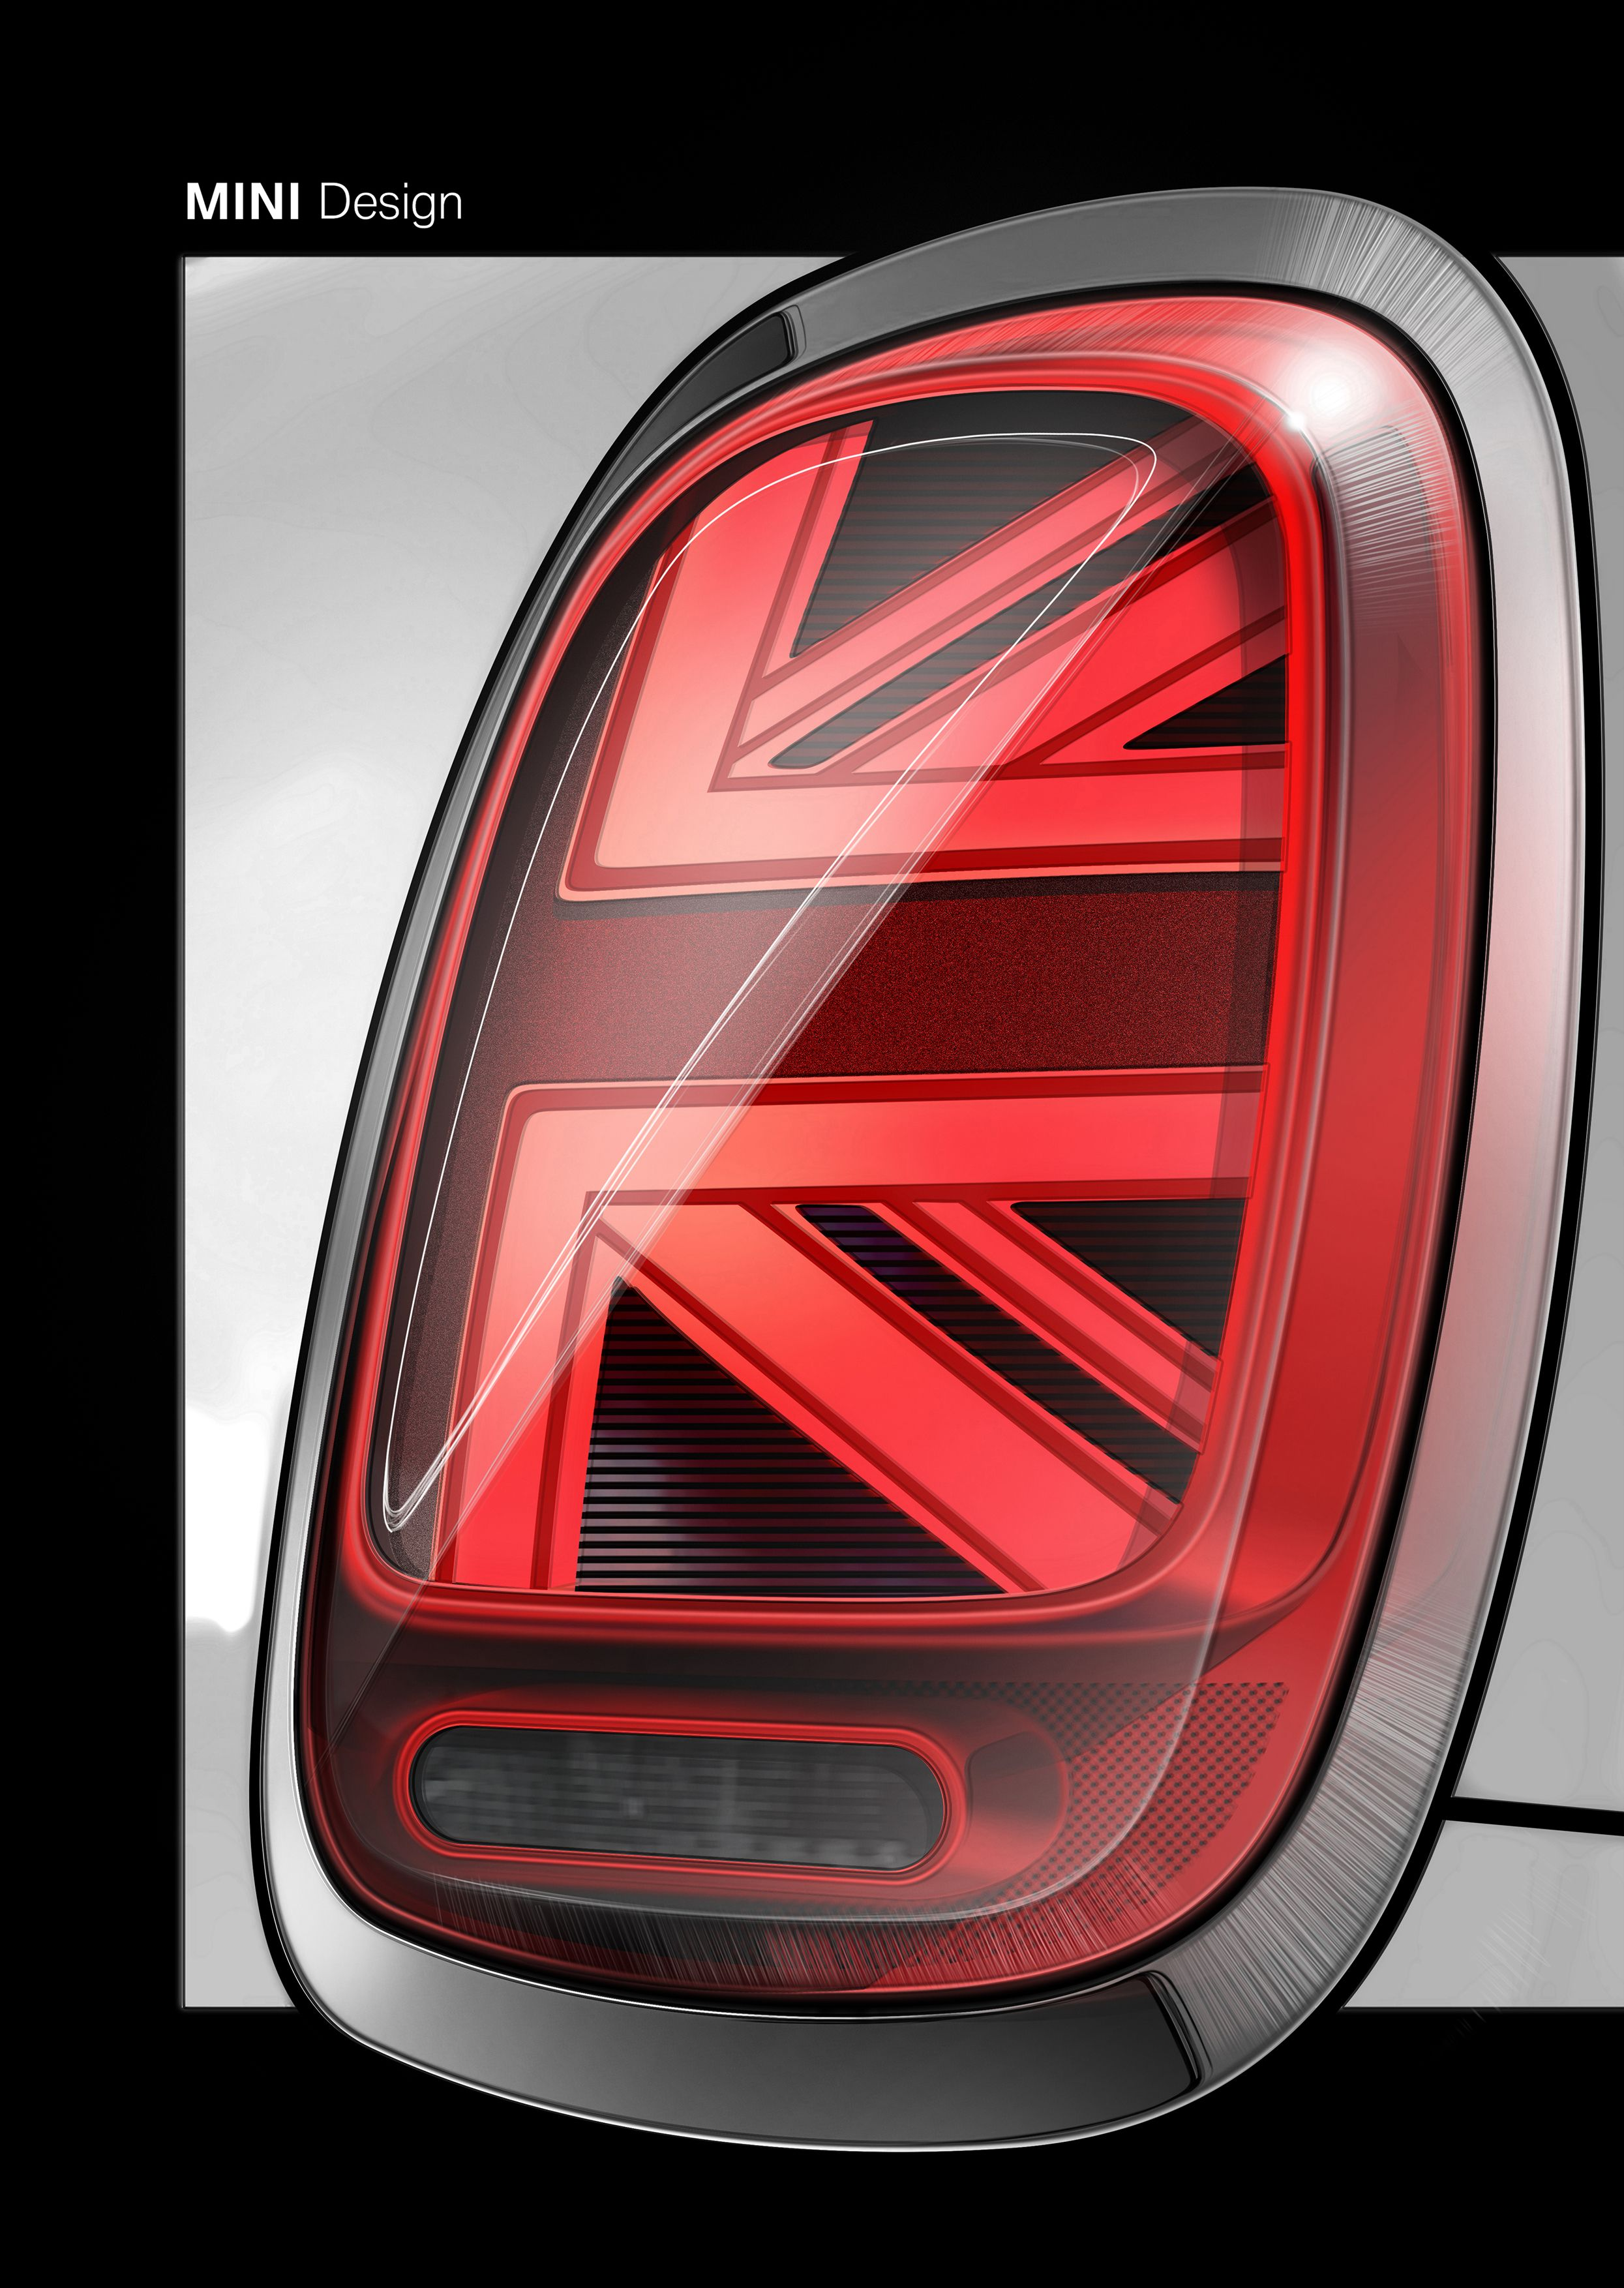 The New Mini 3 Door 5 Convertible Sketch Design Tail Light 01 2018